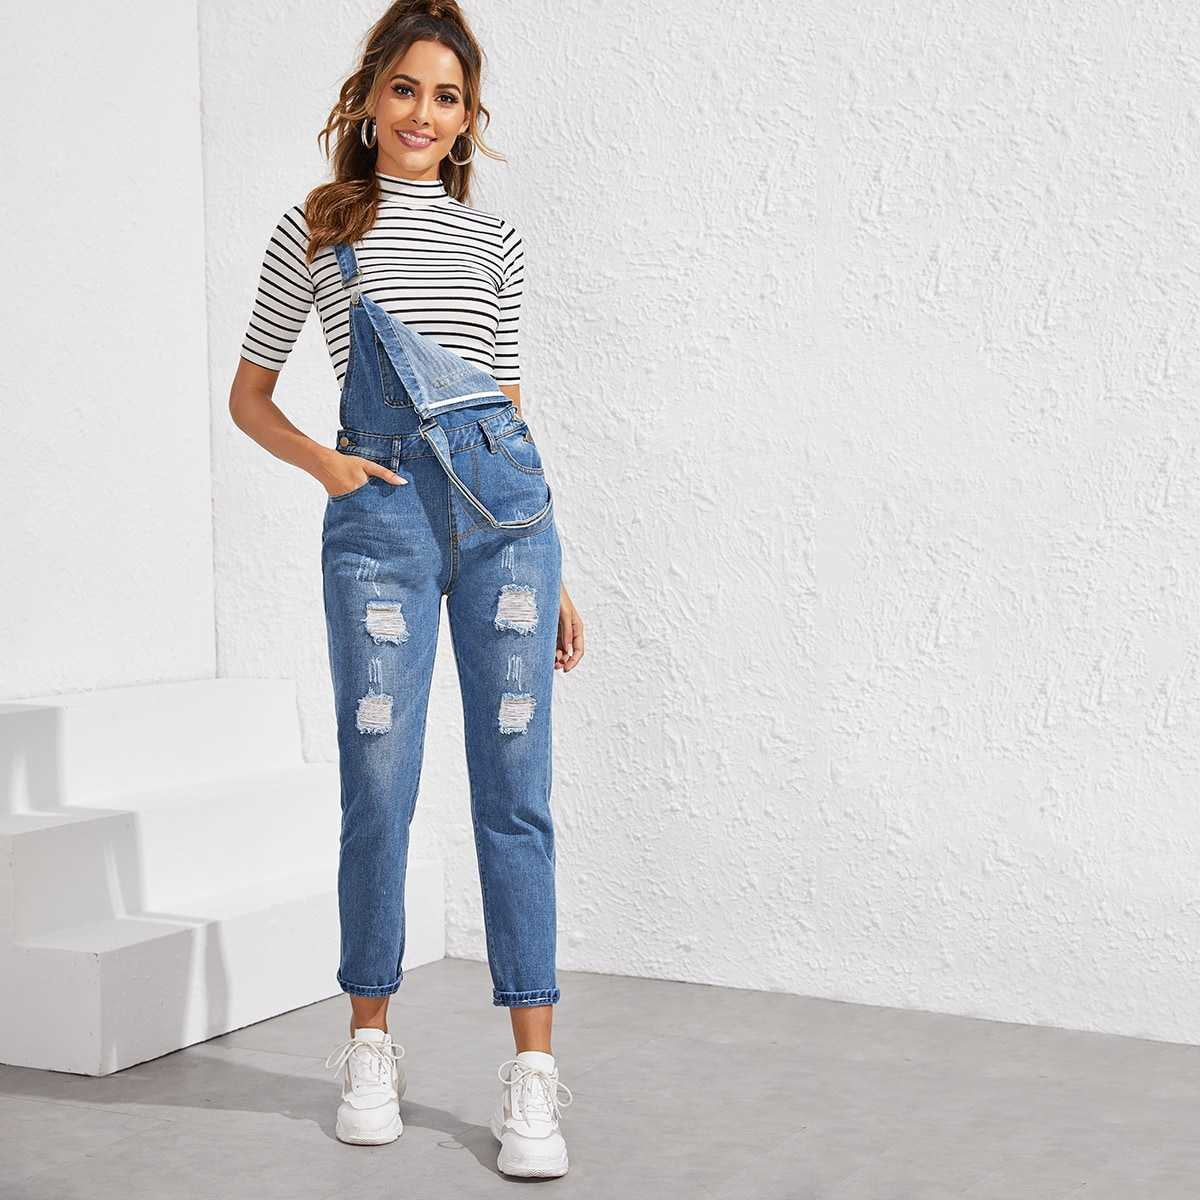 Ripped Pocket Front Denim Overall in Blue by ROMWE on GOOFASH